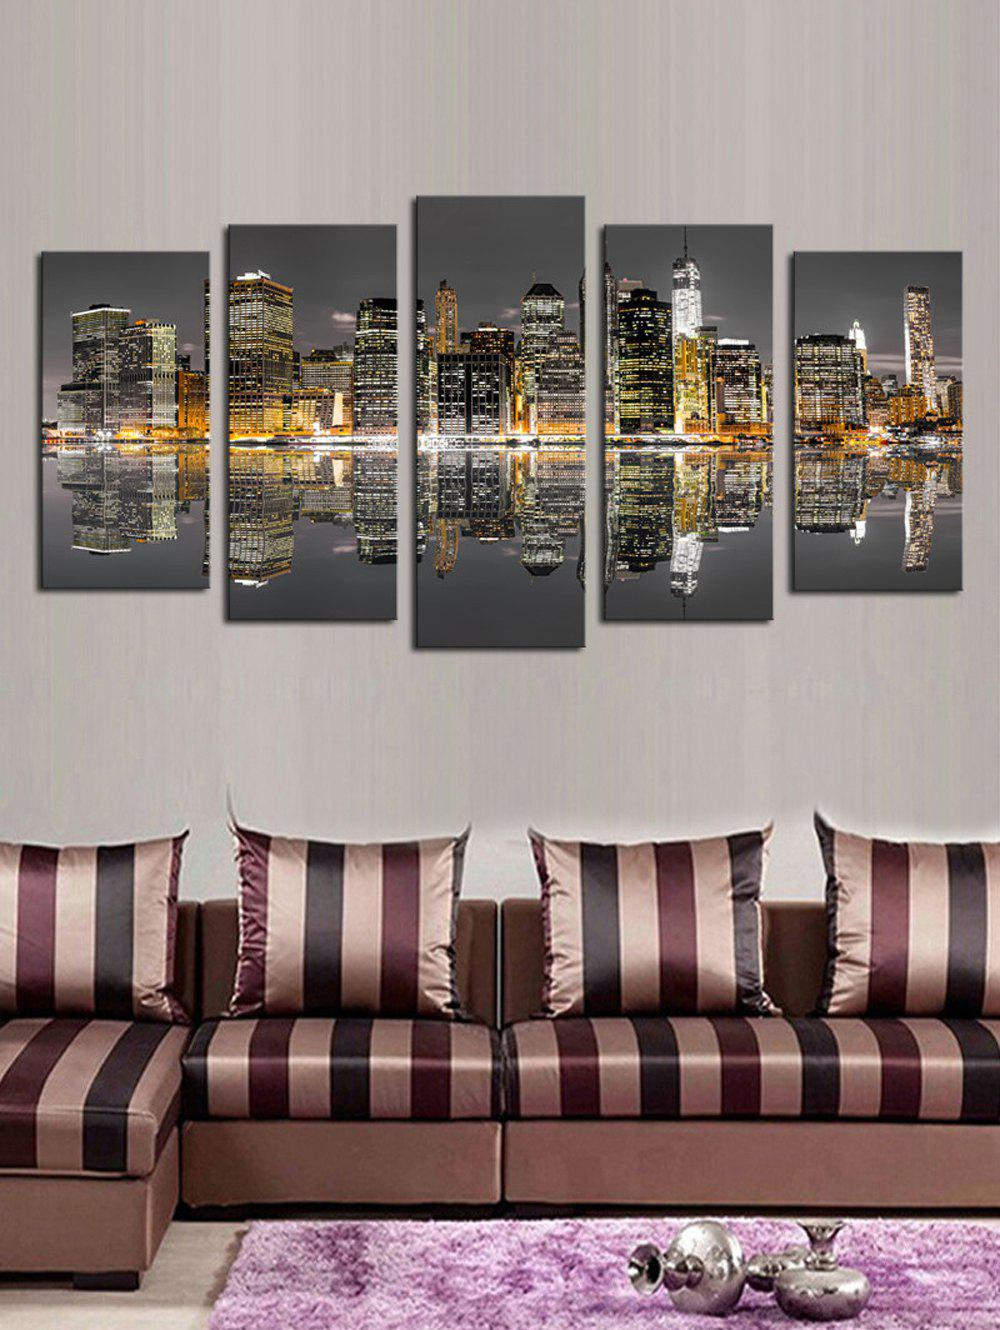 Store Reflection Builds Print Split Unframed Canvas Paintings